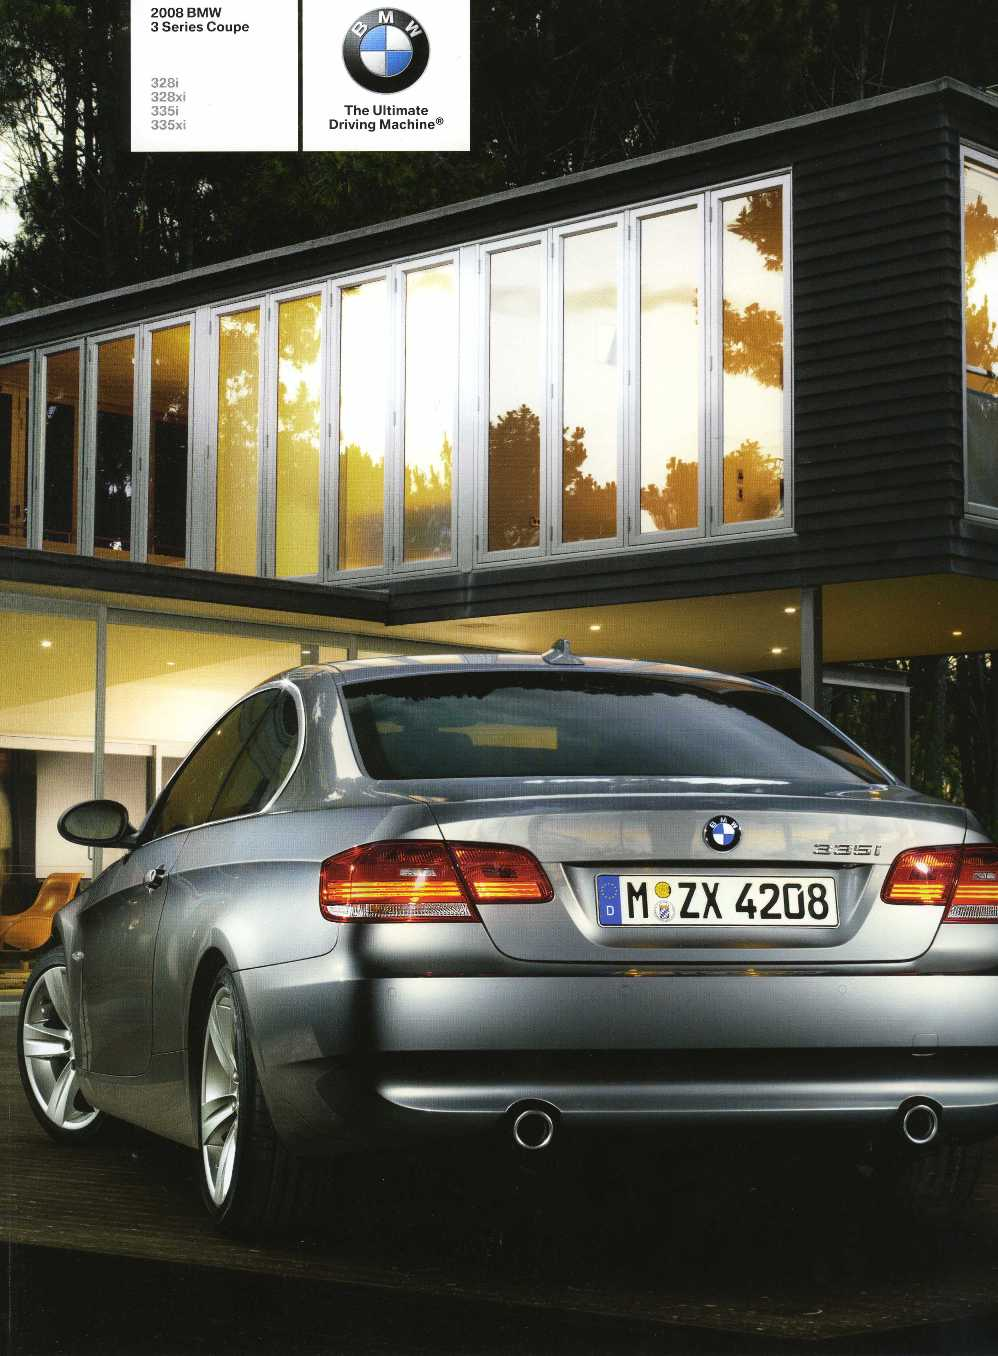 Brochure - 2008 BMW 3 Series Coupe 328i 328xi 335i 335xi - E92 (2nd version)